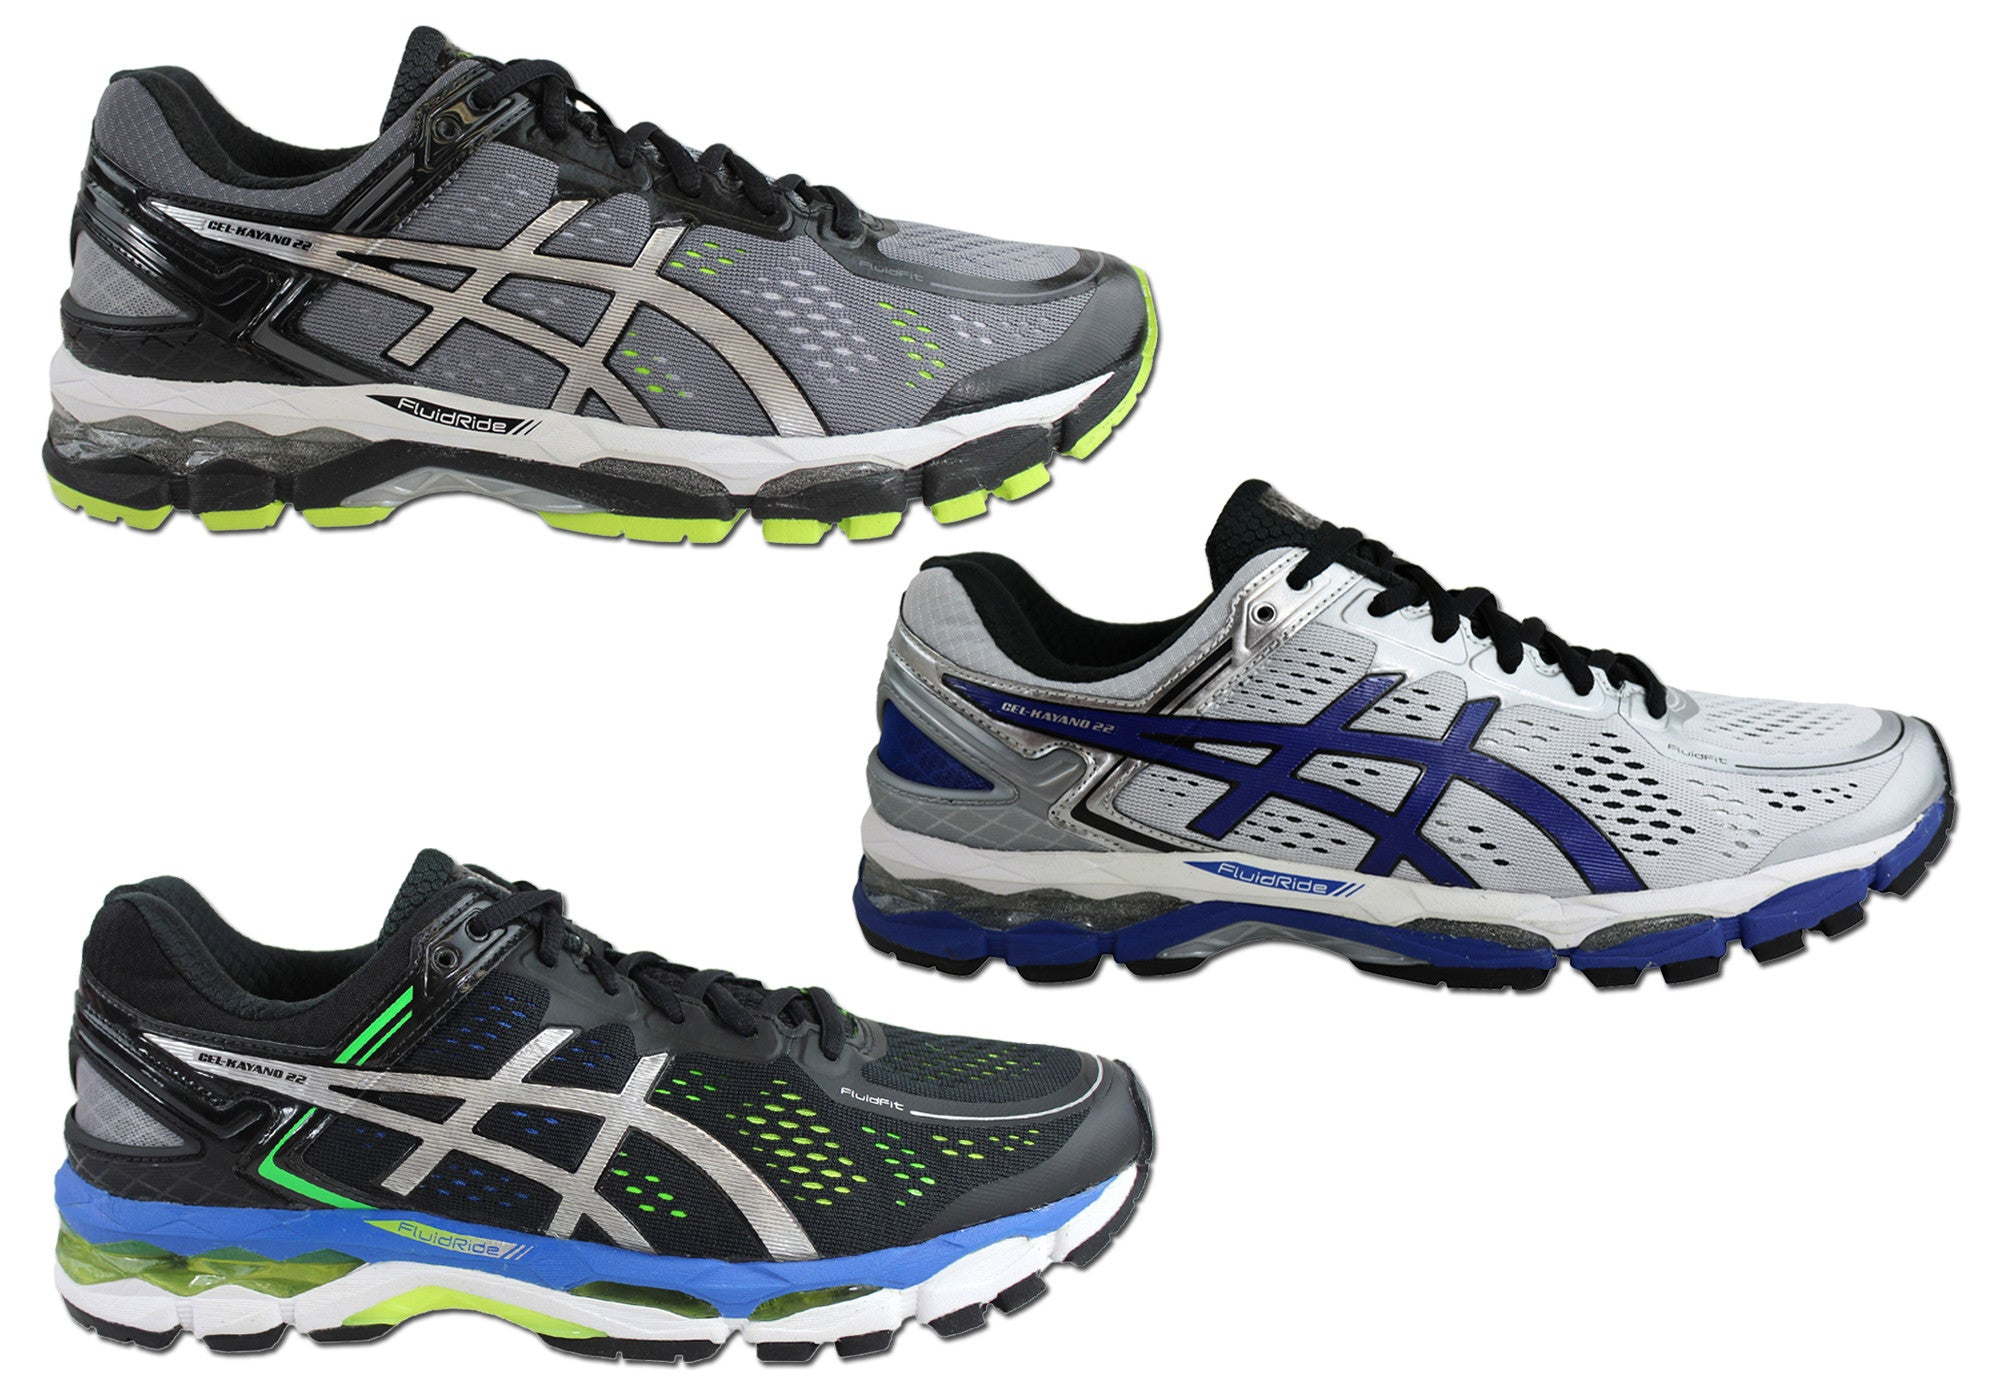 a1224ae6 Details about Asics Gel-Kayano 22 Mens Premium Cushioned Running  Shoes/Sneakers/Trainers/Sport